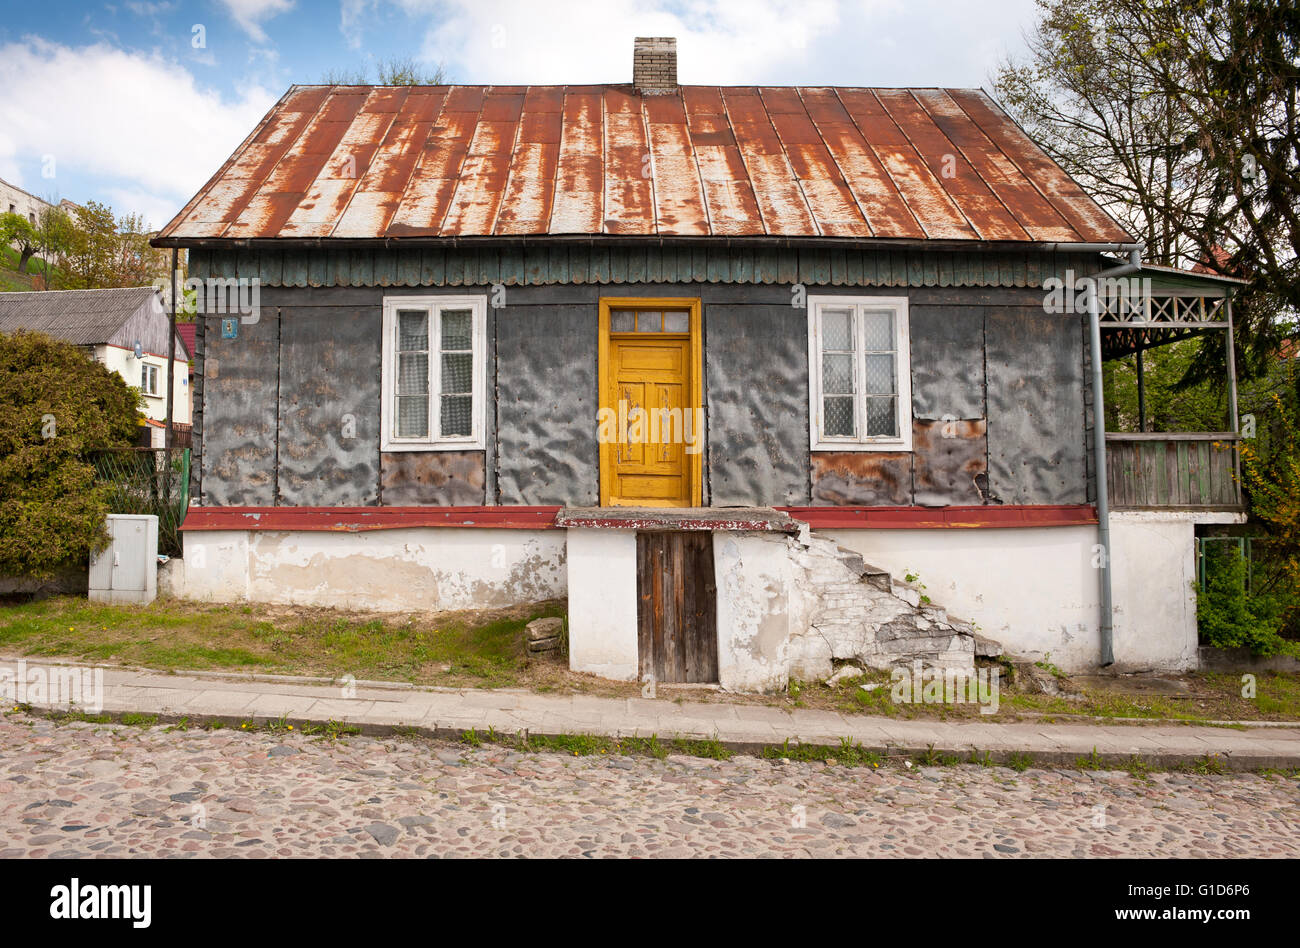 Old home in Janowiec village at Lubelska Street, dilapidated old weathered house, private property building exterior - Stock Image